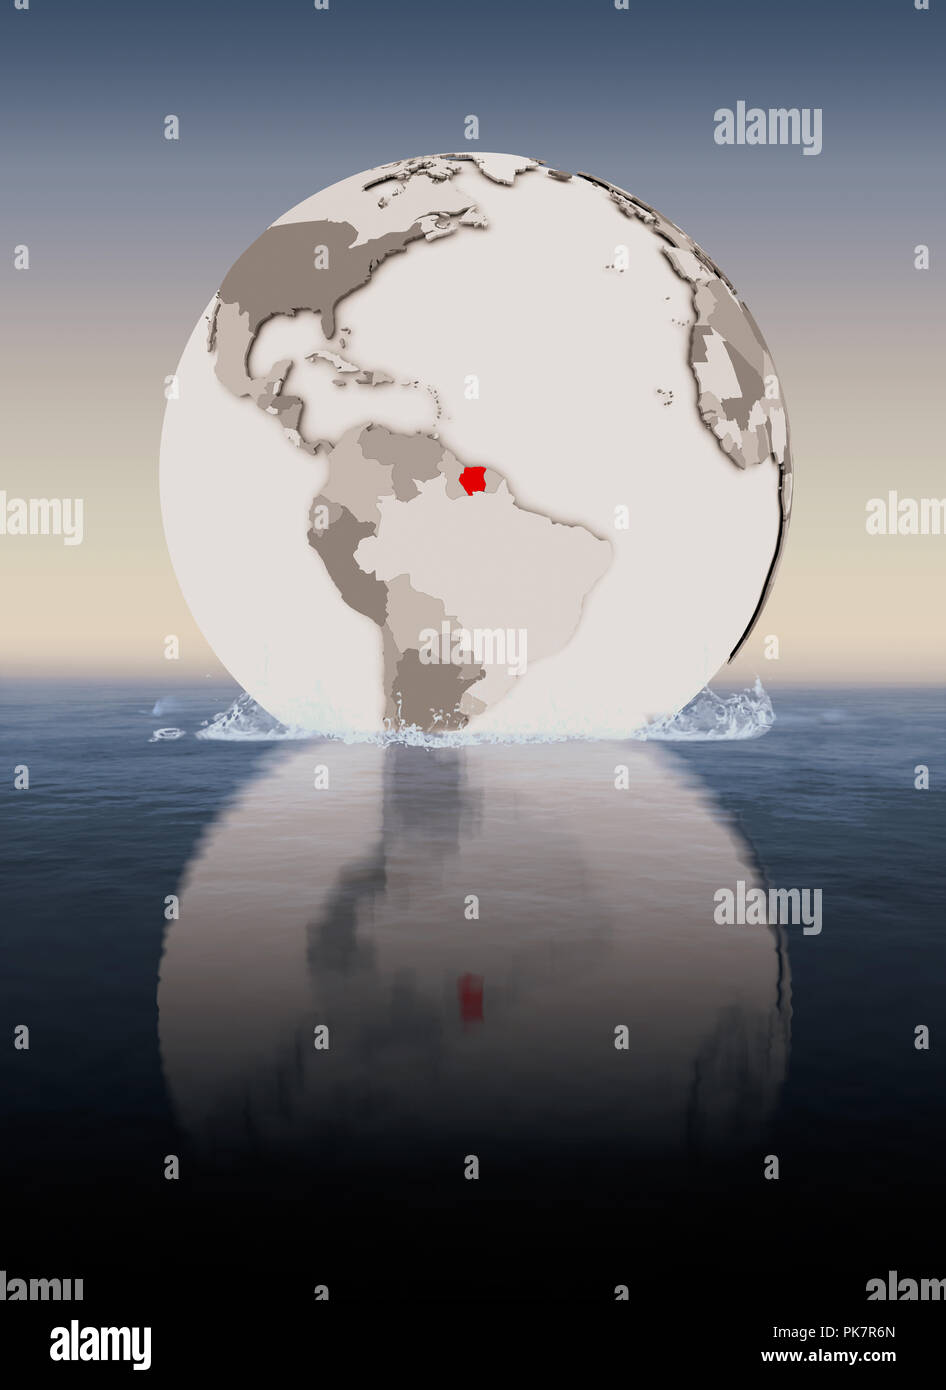 Suriname In red on globe floating in water. 3D illustration. - Stock Image